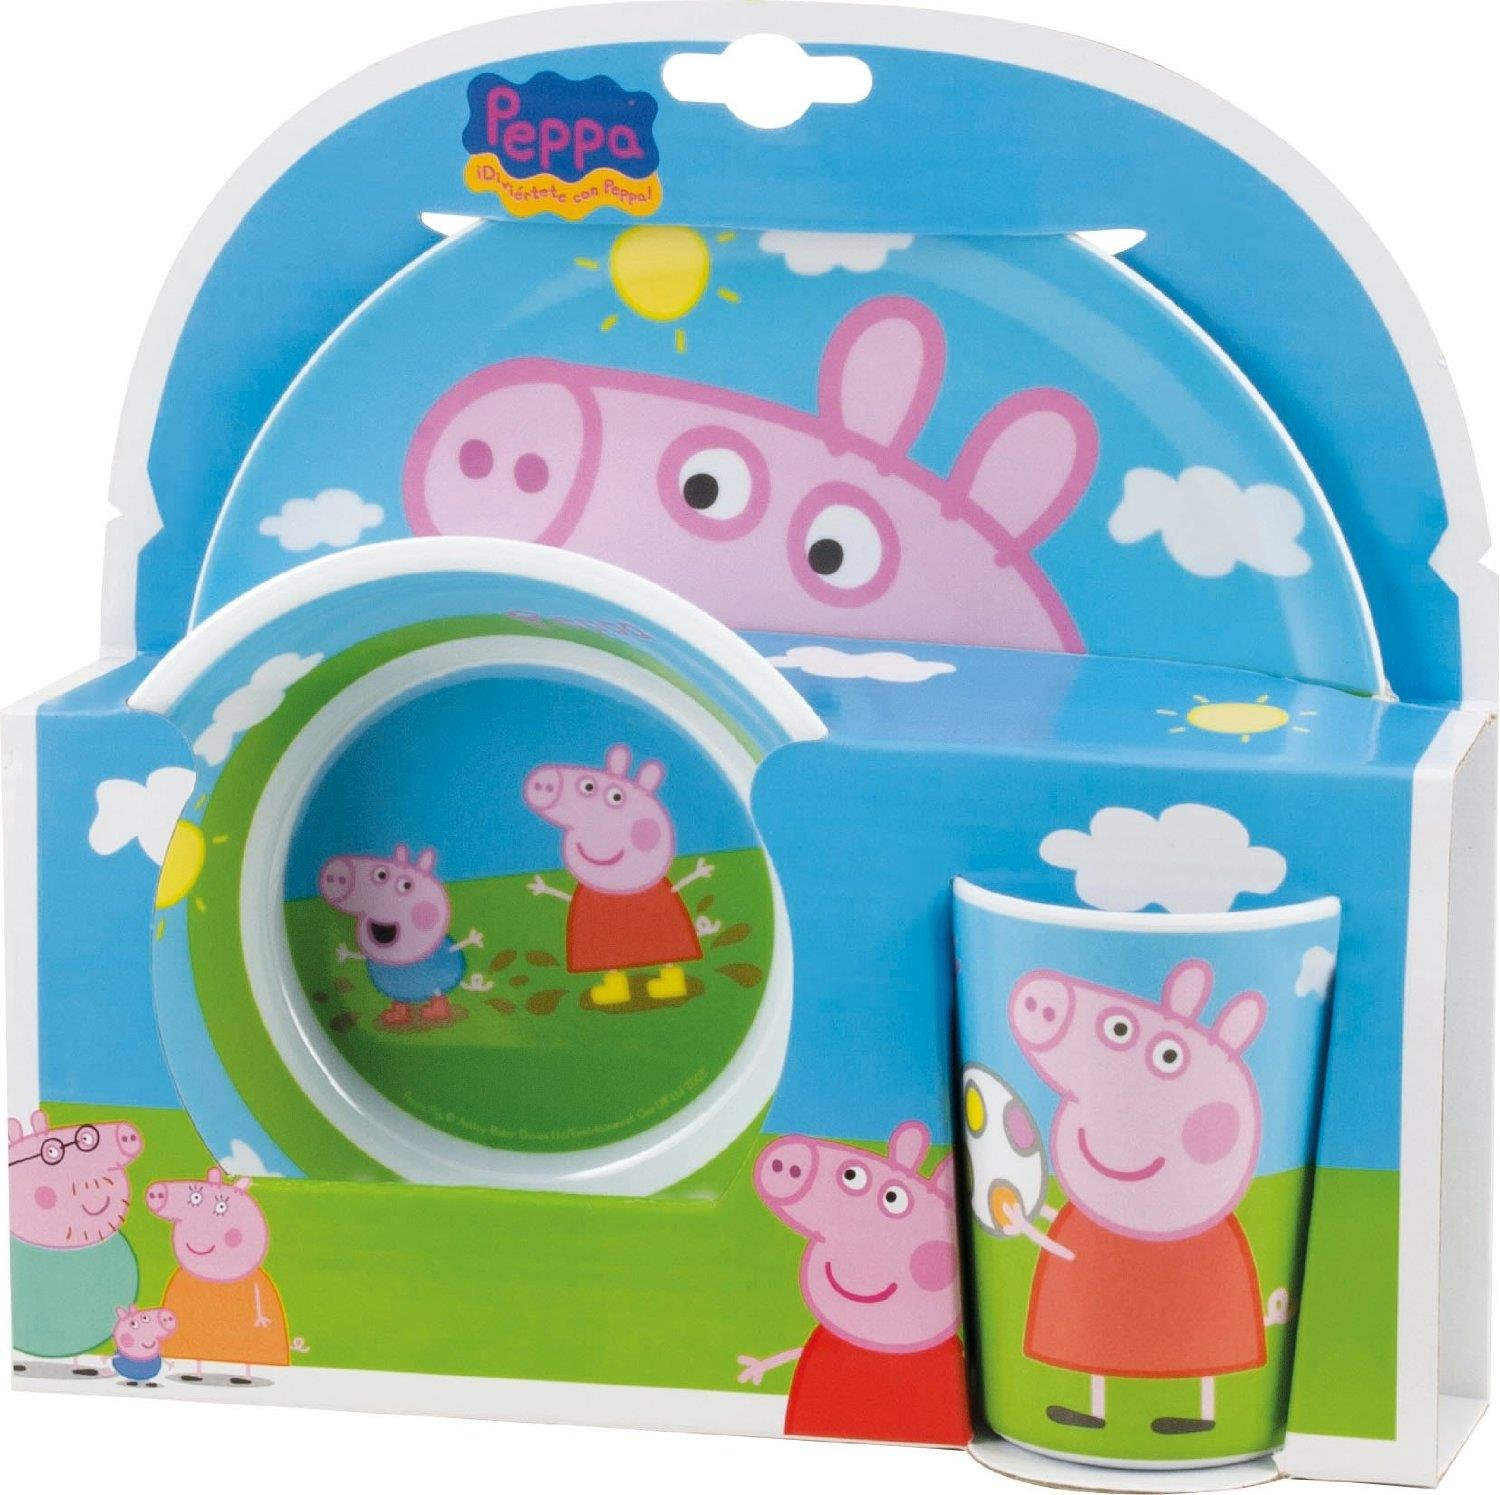 Peppa Pig Melamine Set 2 Plates and 1 Tumbler ToyCenter 748690